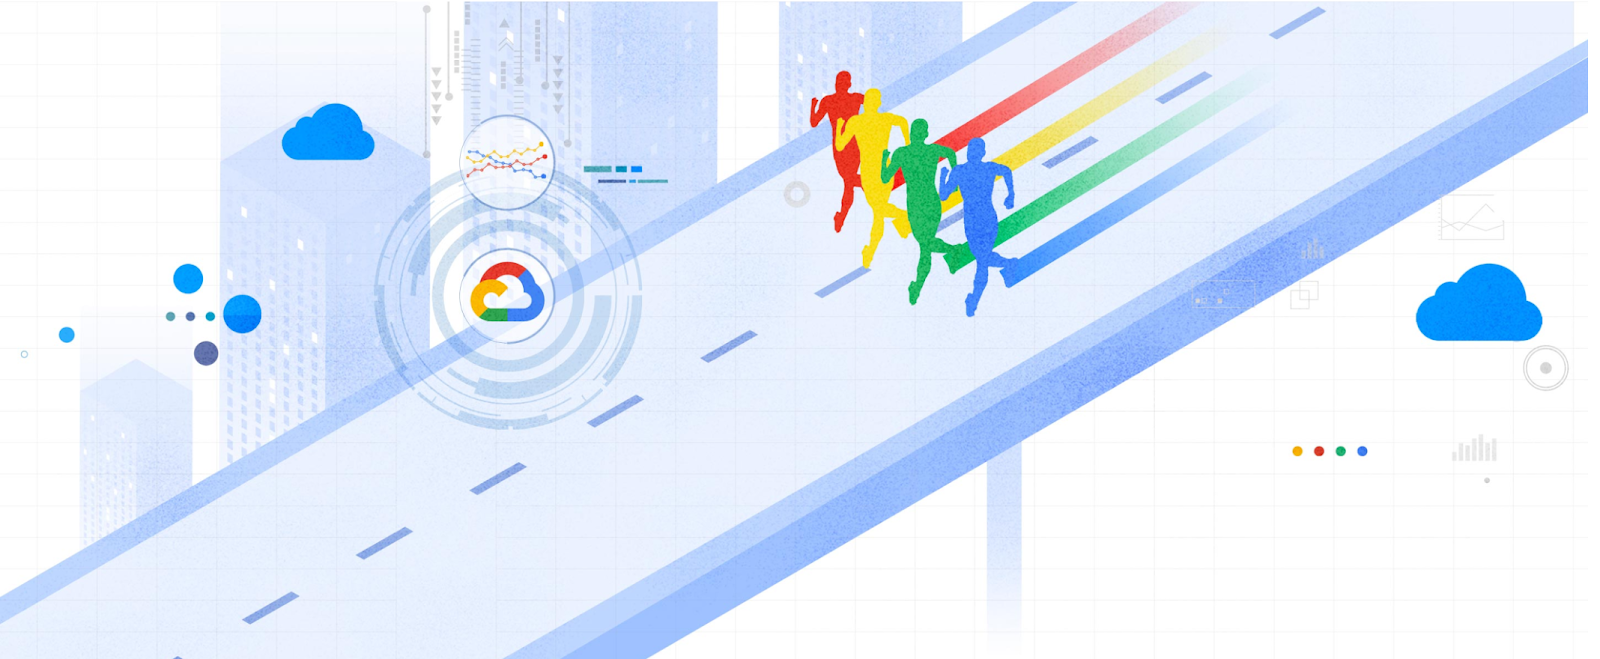 Cloud Run for Anthos Google Anthos generally available google cloud next hybrid multicloud